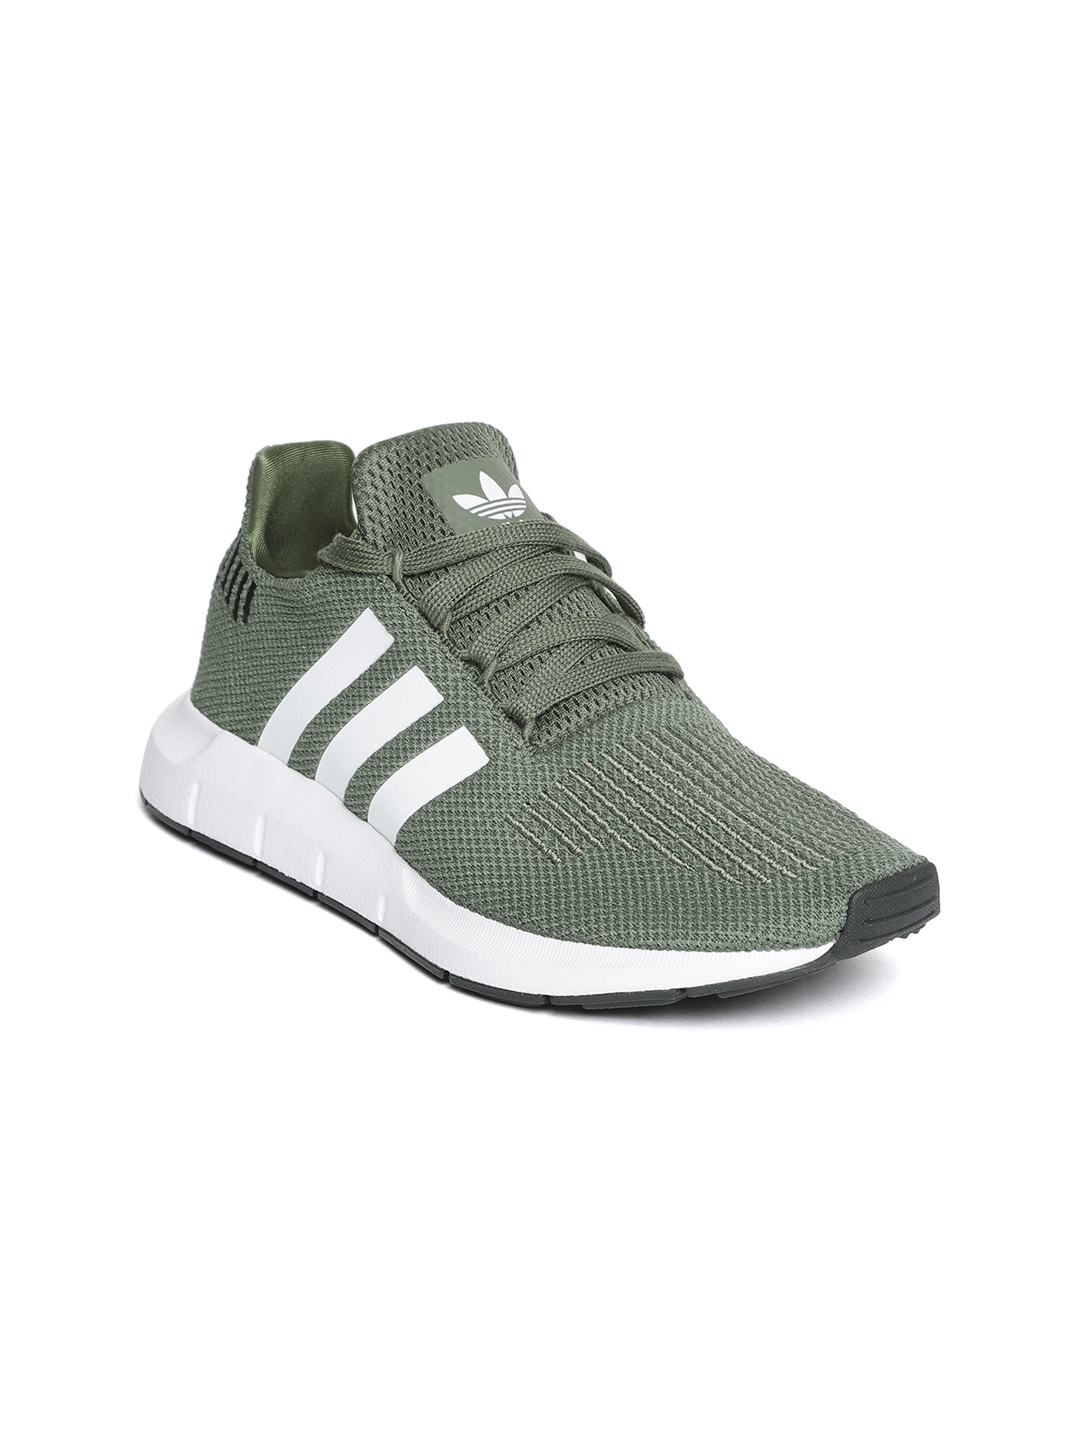 67ff2652875 Adidas Originals Women Olive Green Swift Run Woven Design Sneakers